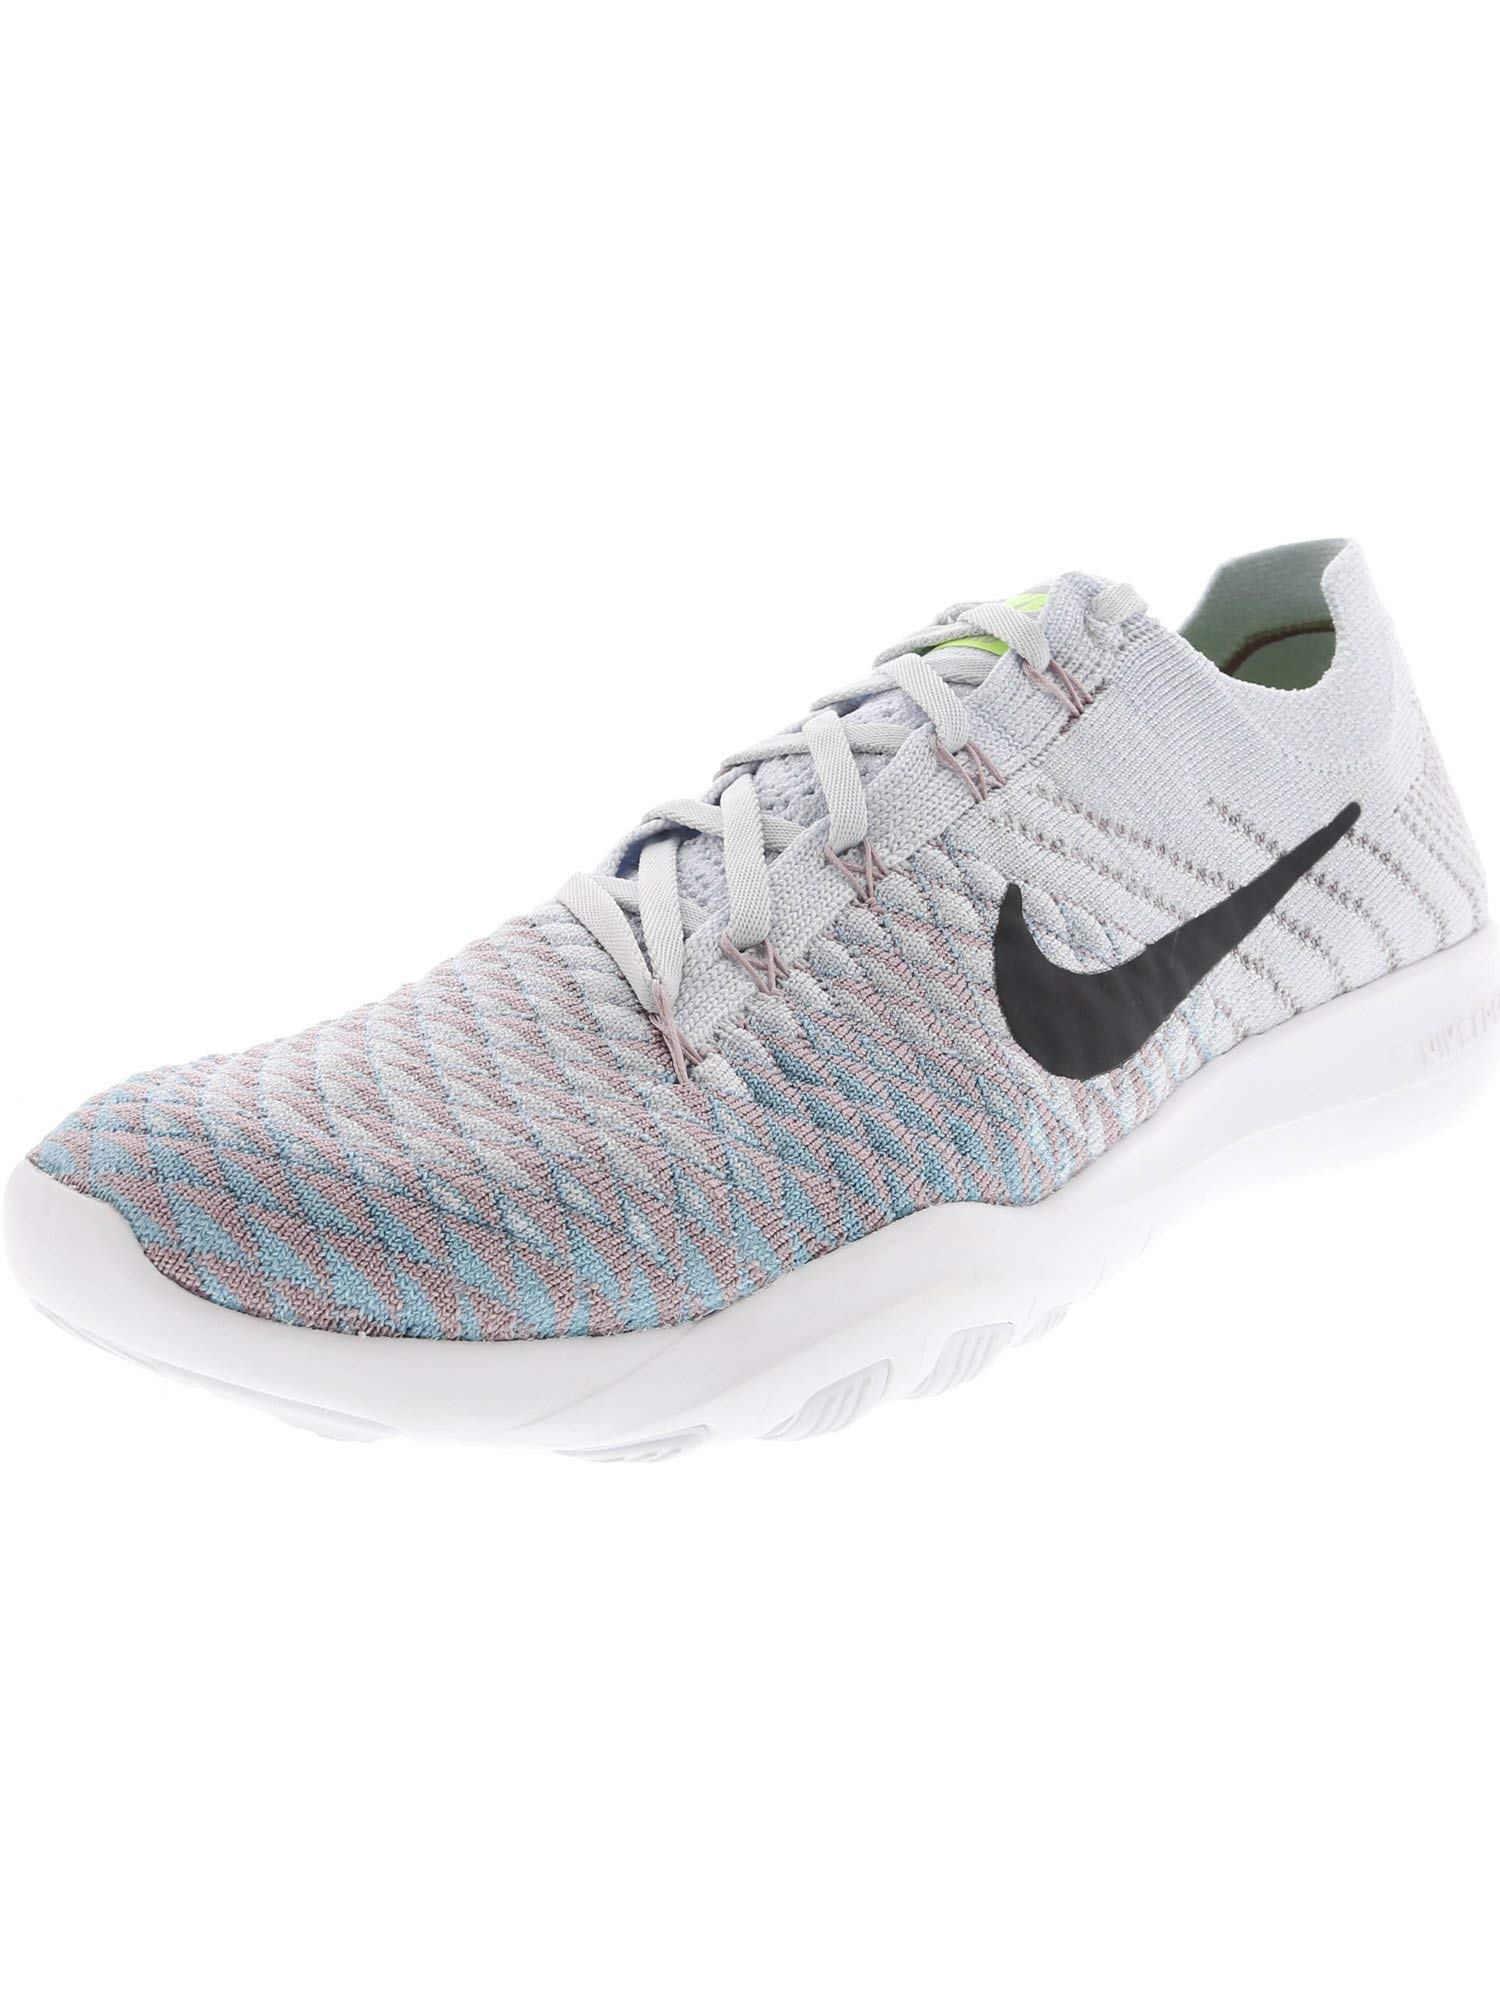 half off edbce 96455 Nike Women's Free Tr Flyknit 2 Pure Platinum/Anthracite Ankle-High Fabric  Cross Trainer Shoe - 7.5M